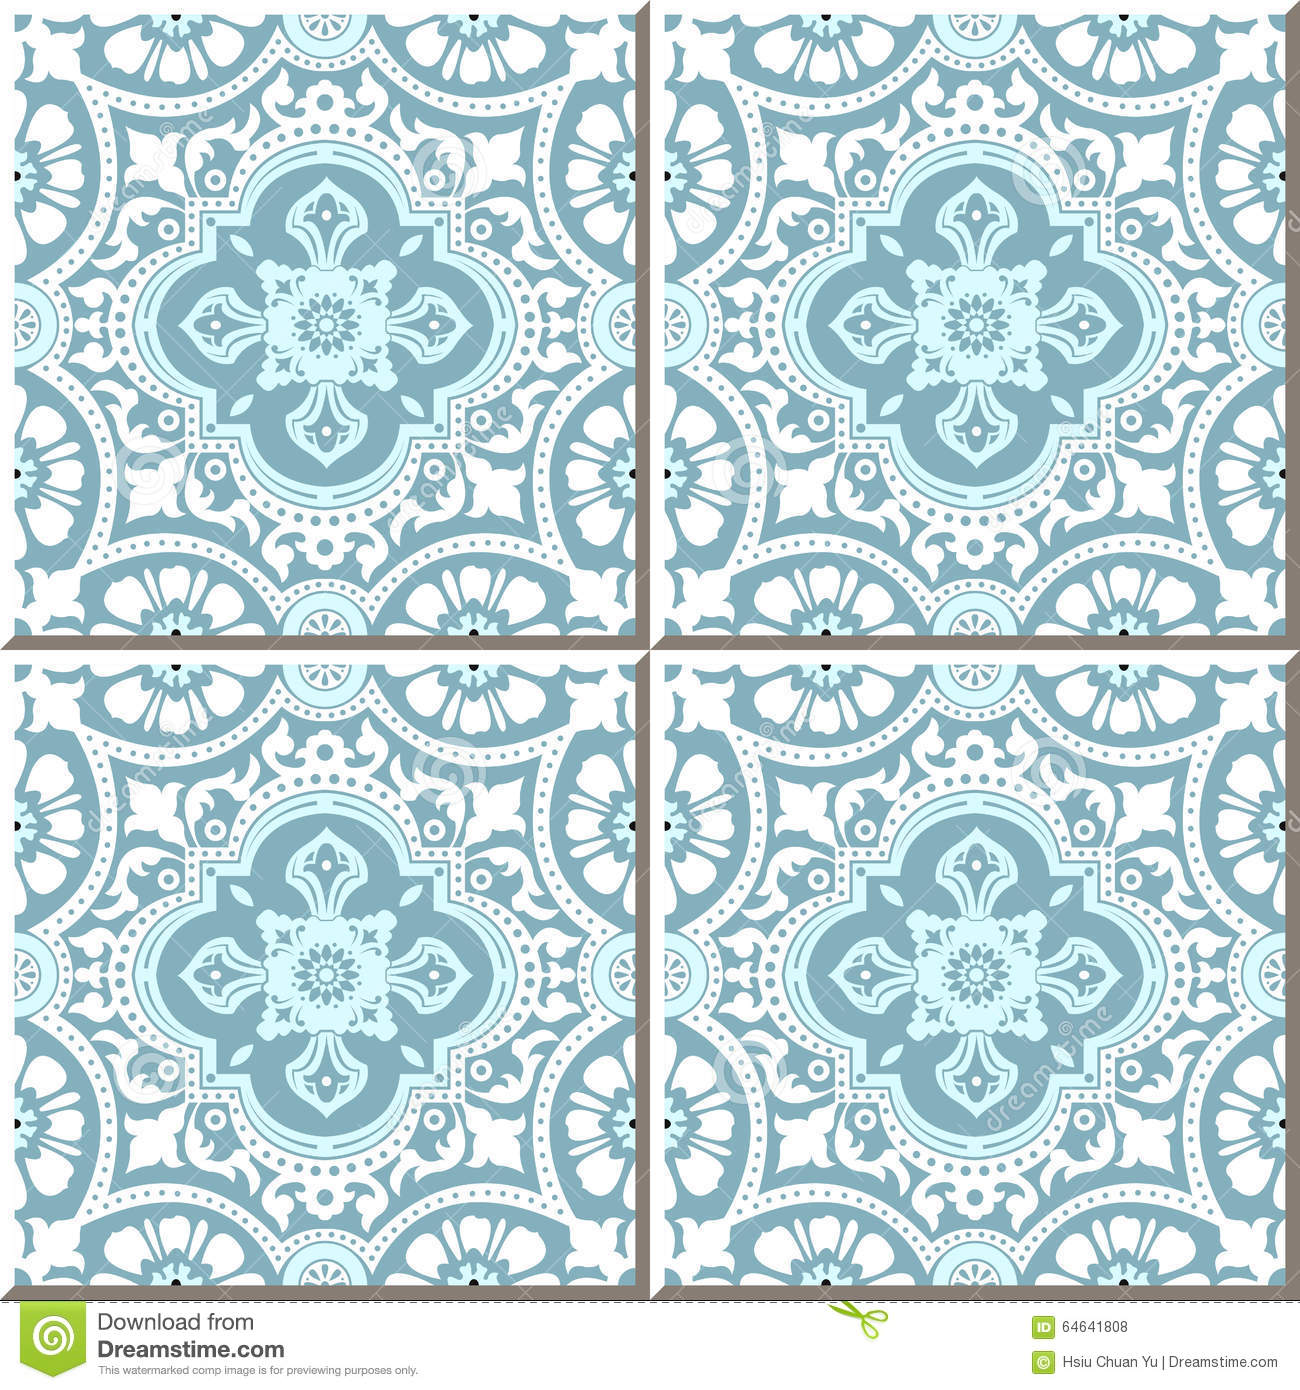 Vintage Seamless Wall Tiles Of White Lace Flower, Moroccan ...